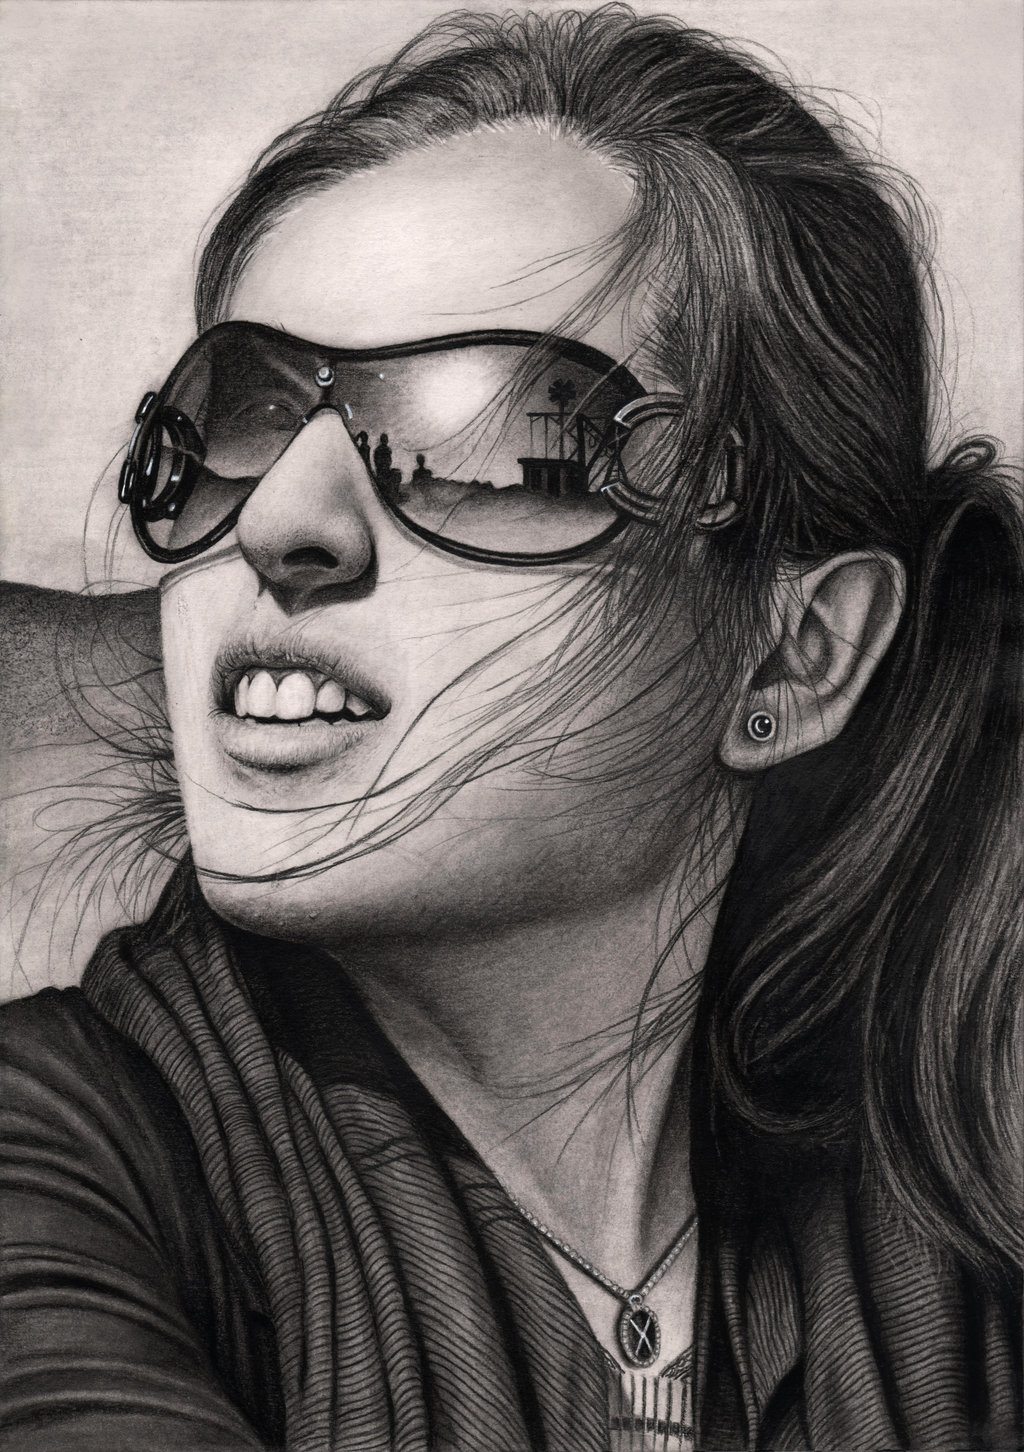 Drawn spectacles reflection By Pen DeviantArt Artist 'Reflection'